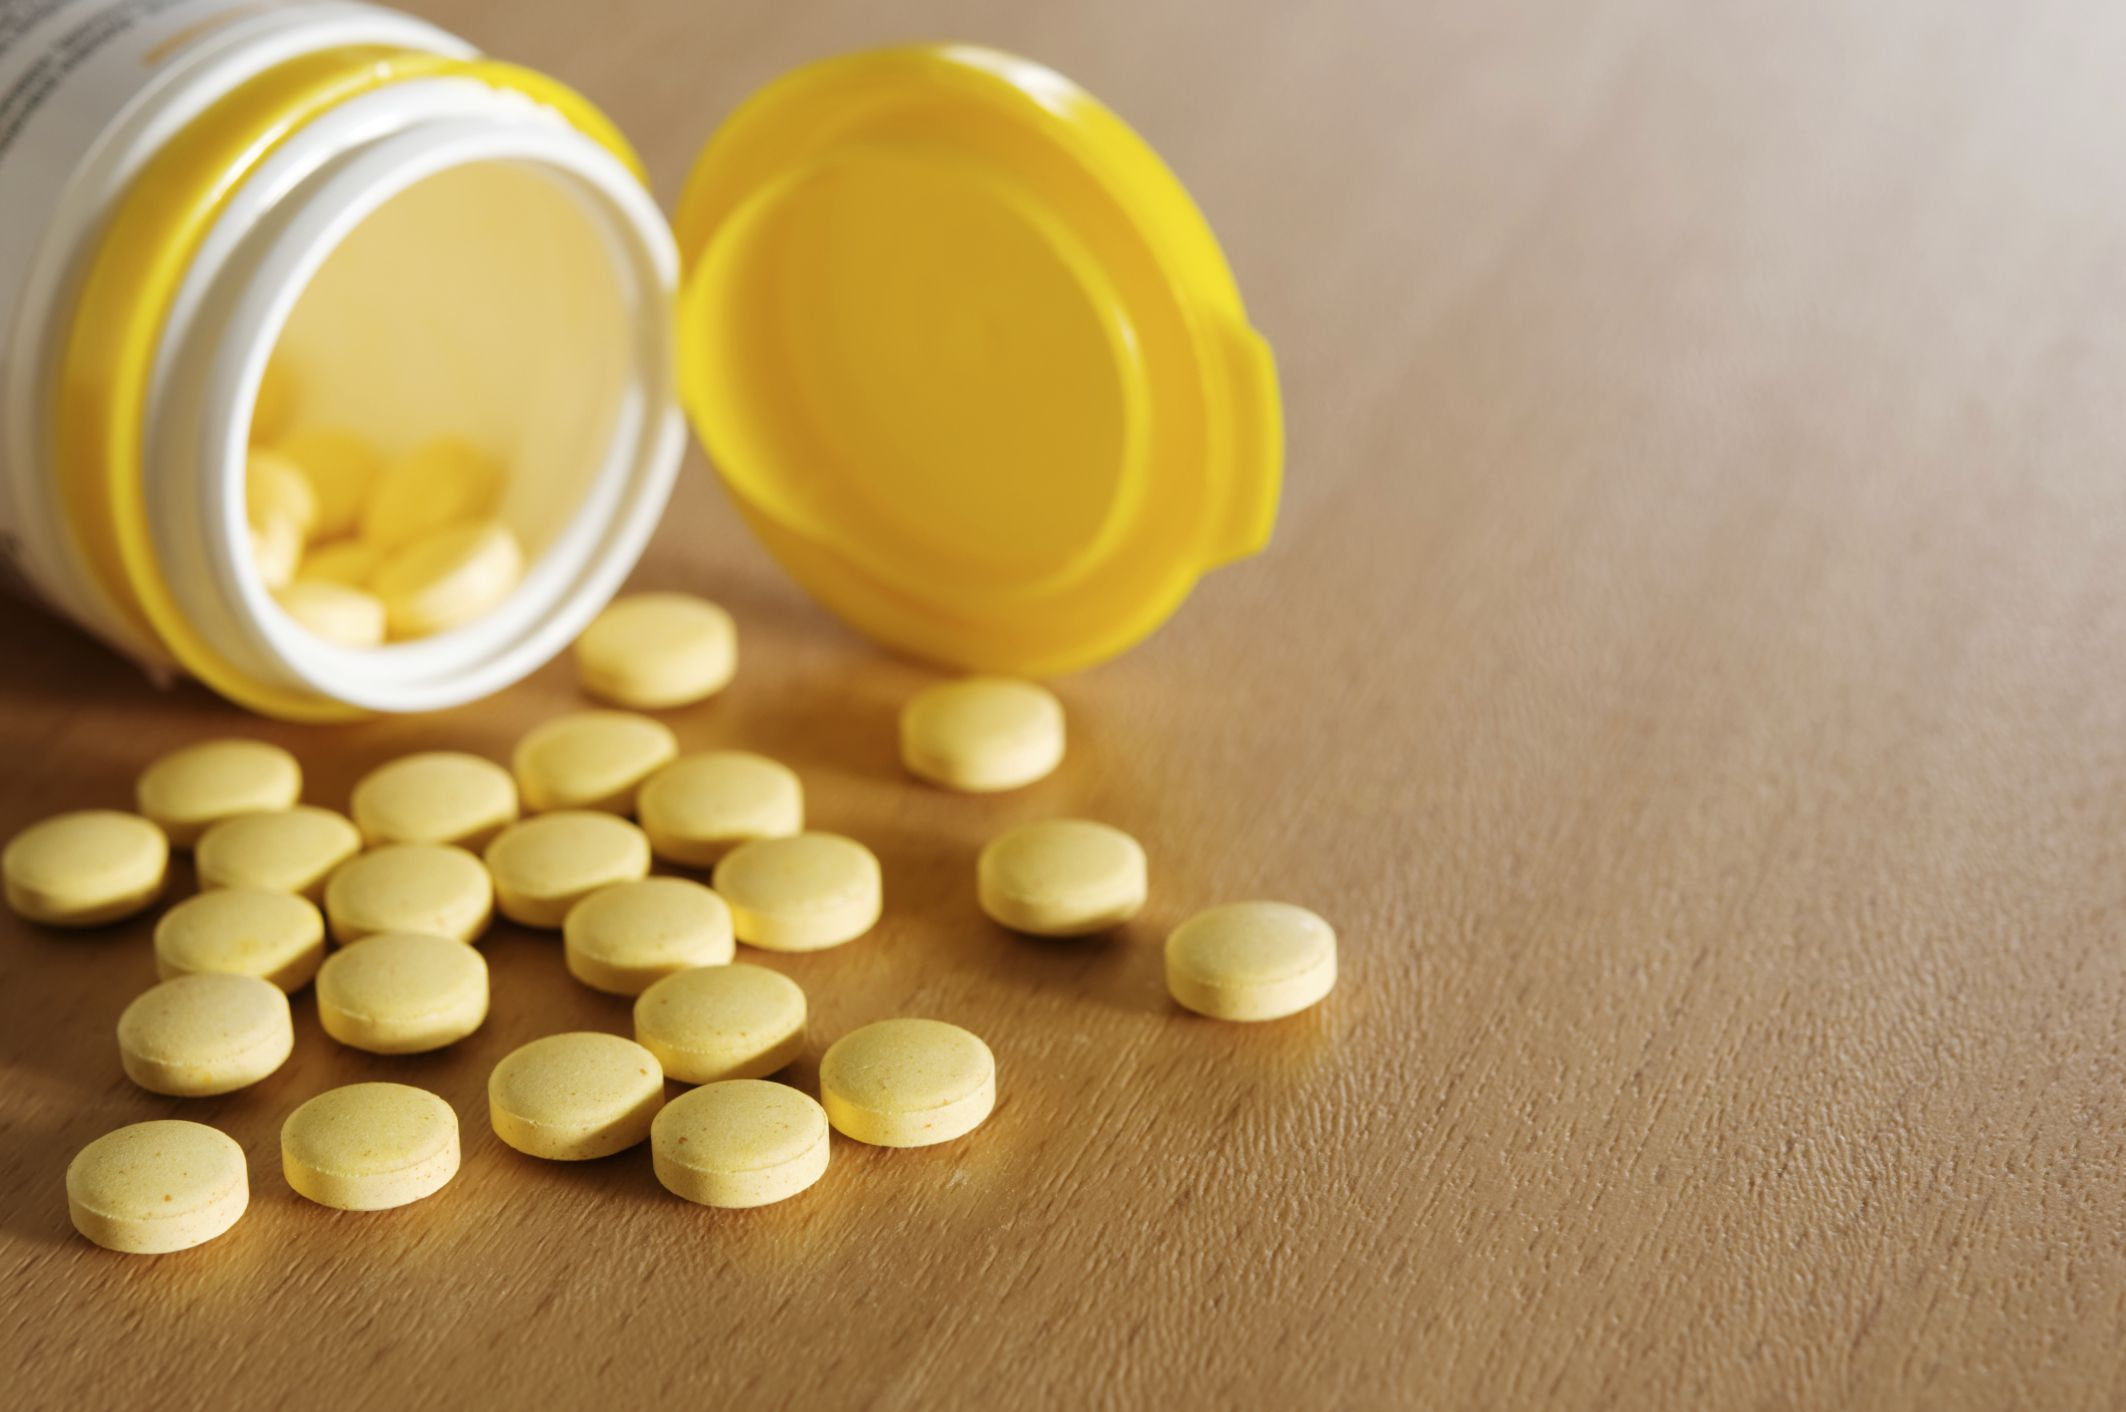 Vitamin B12 Deficiency and Multiple Sclerosis